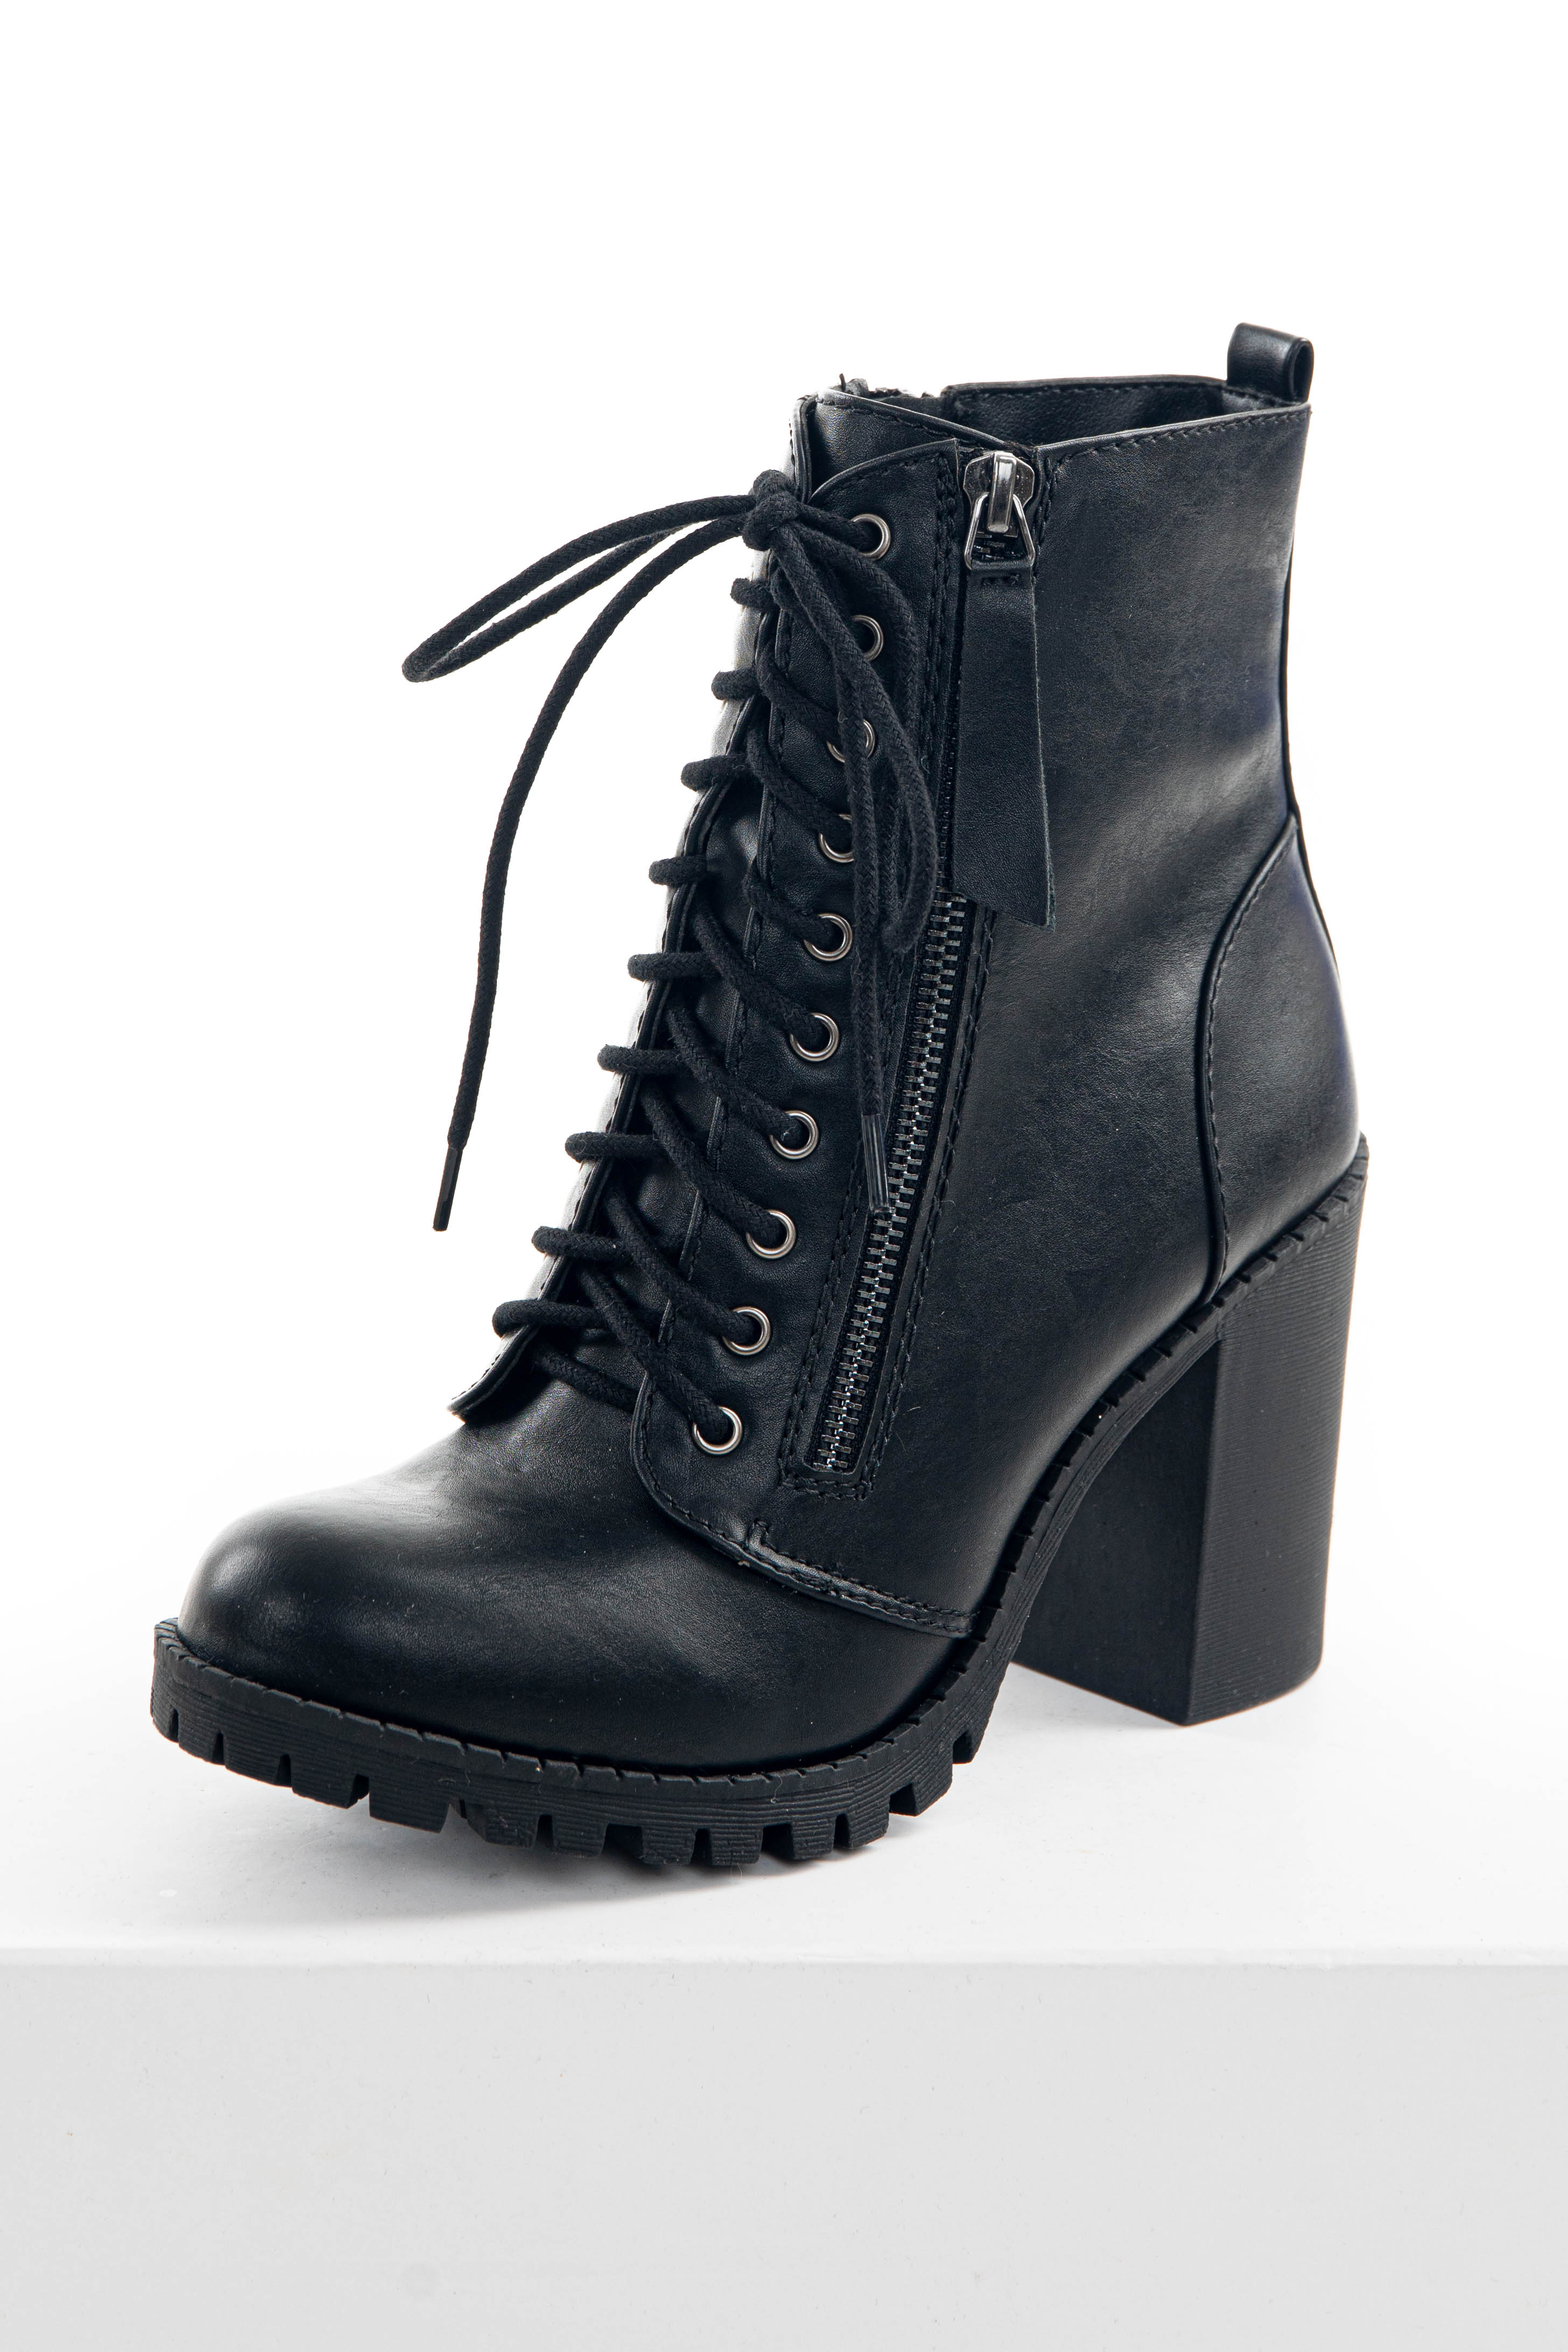 Black Faux Leather Heeled Combat Booties